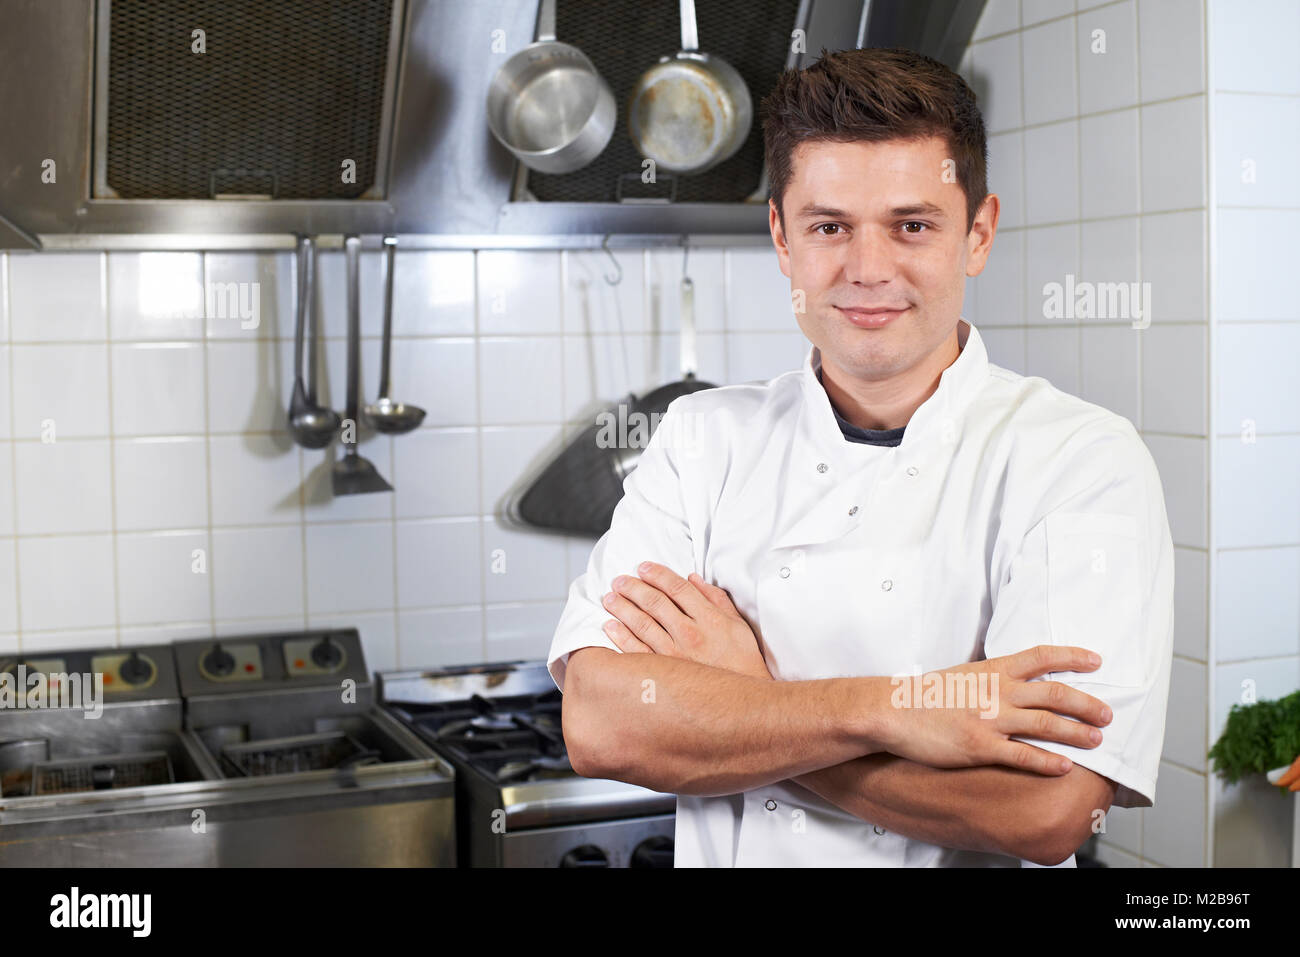 Portrait Of Chef Wearing Whites Standing By Cooker In Kitchen - Stock Image